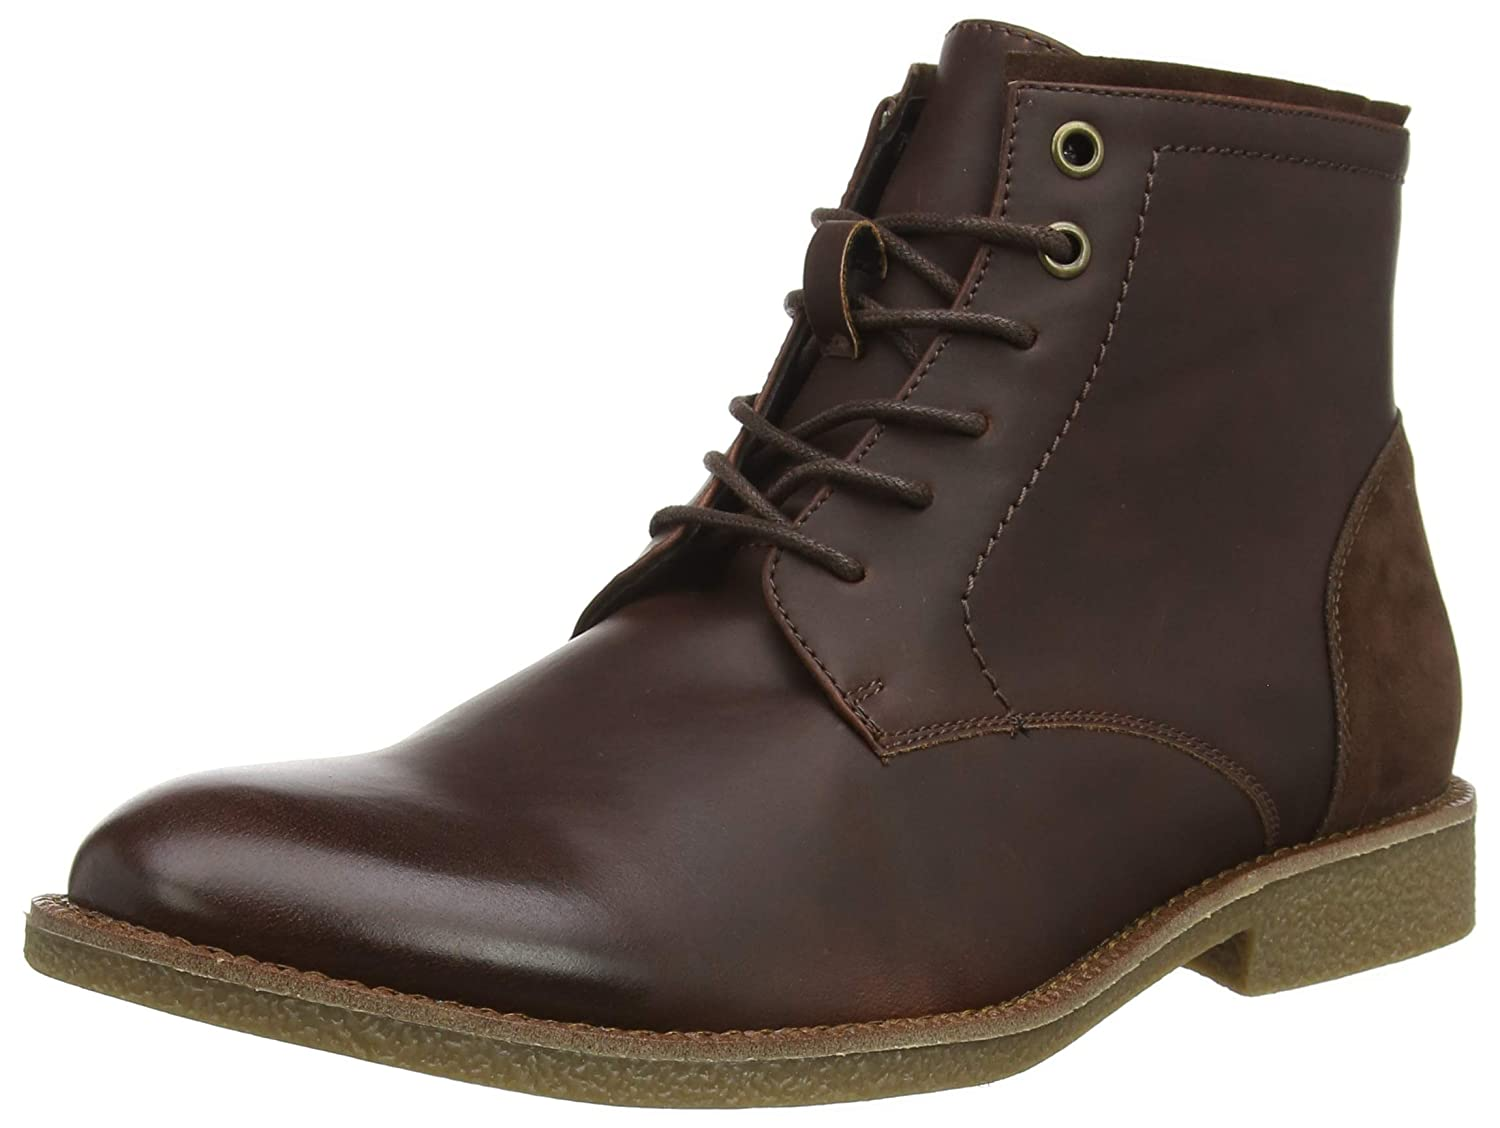 TALLA 43 EU. New Look Arizona Zip, Botas Clasicas para Hombre